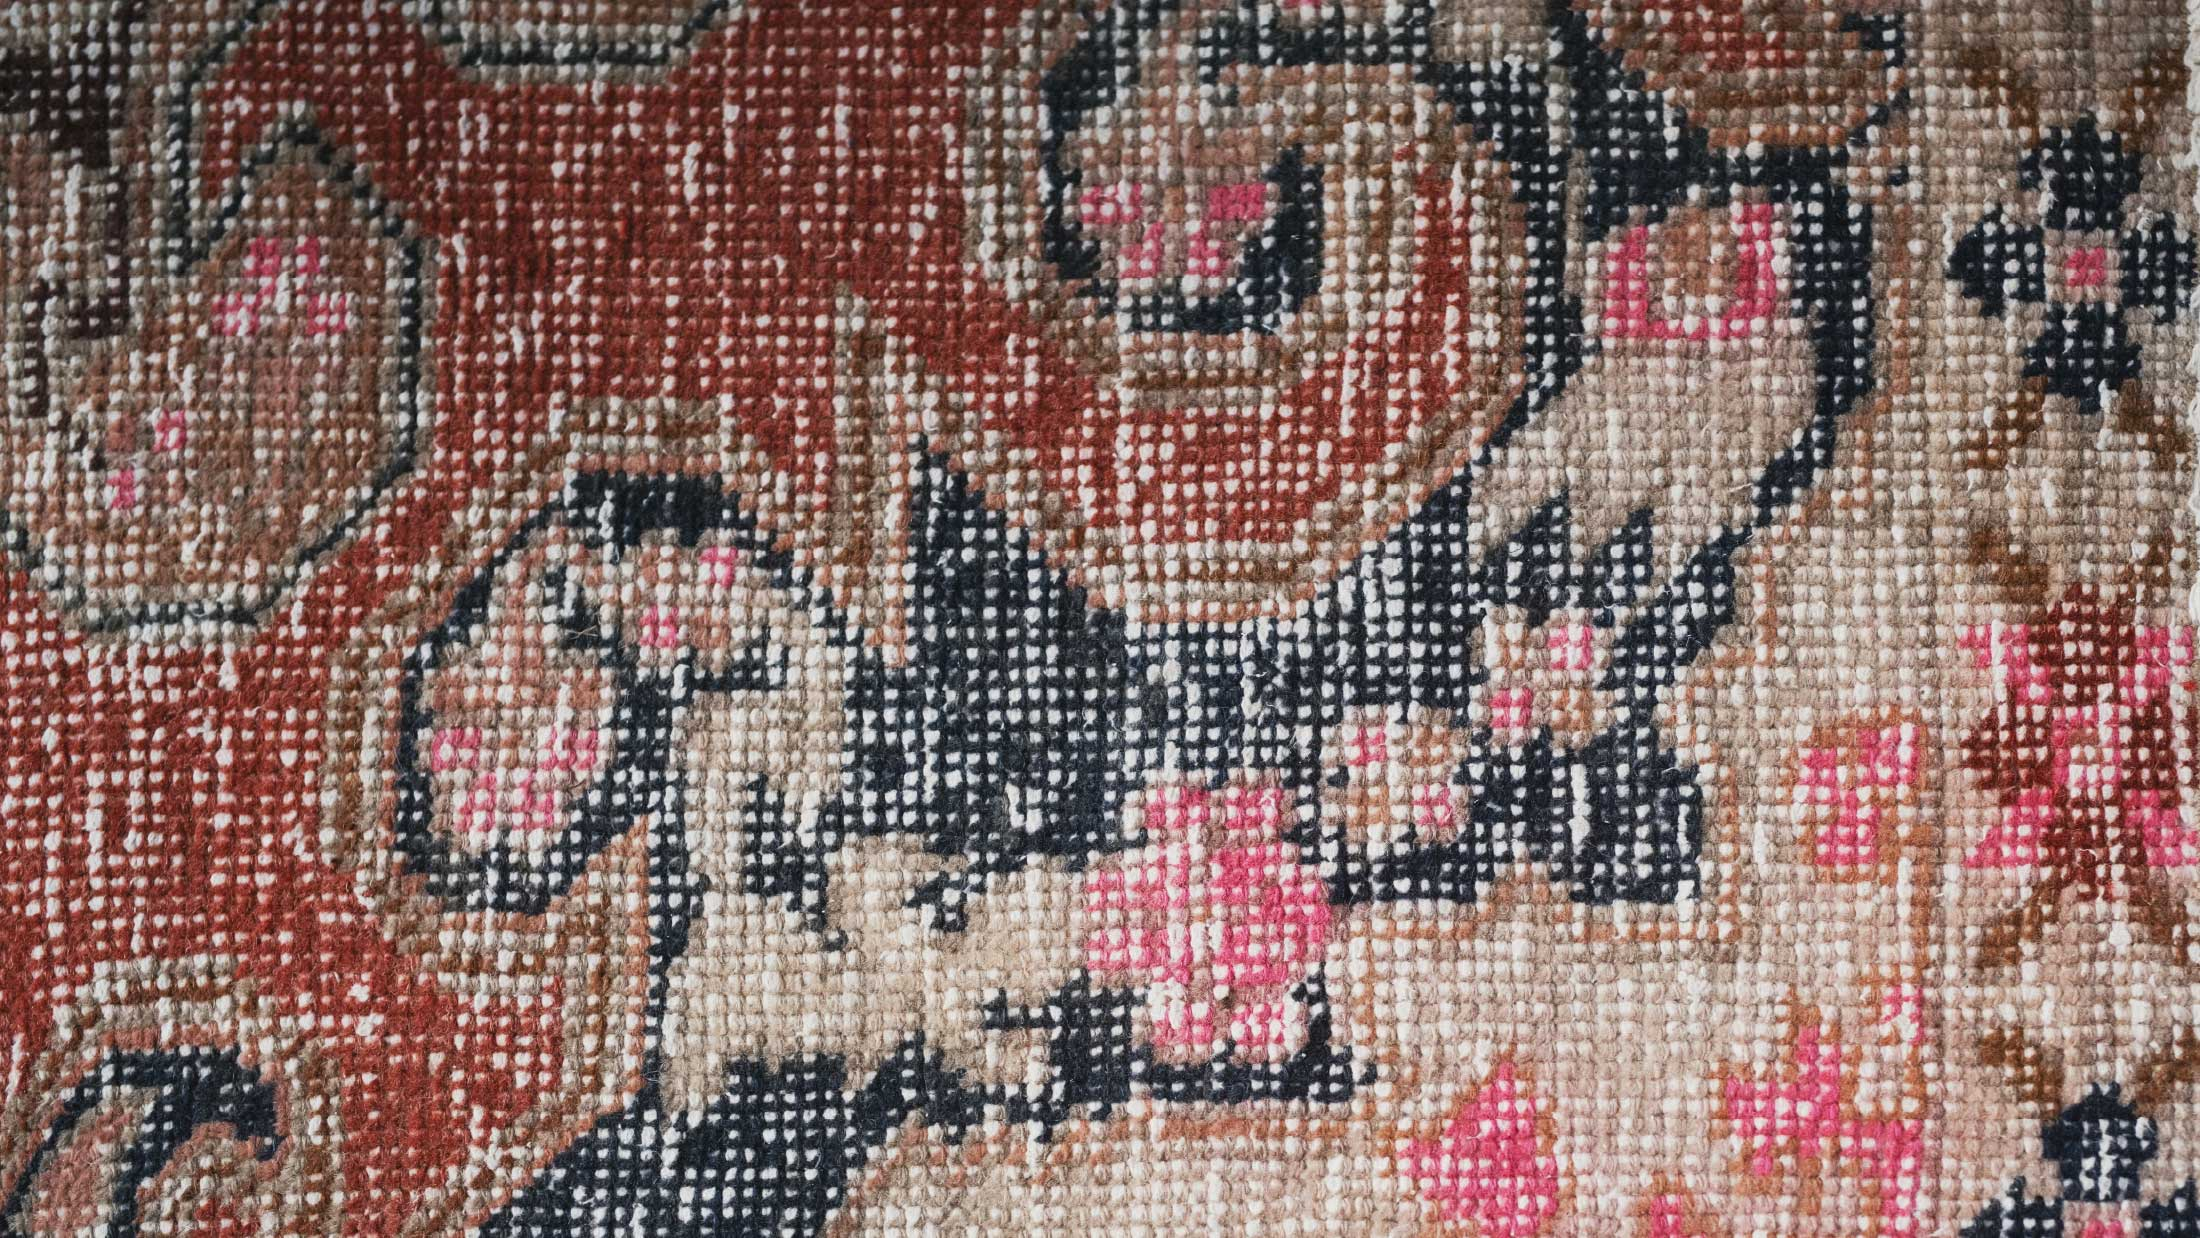 Close up photo of a rug texture